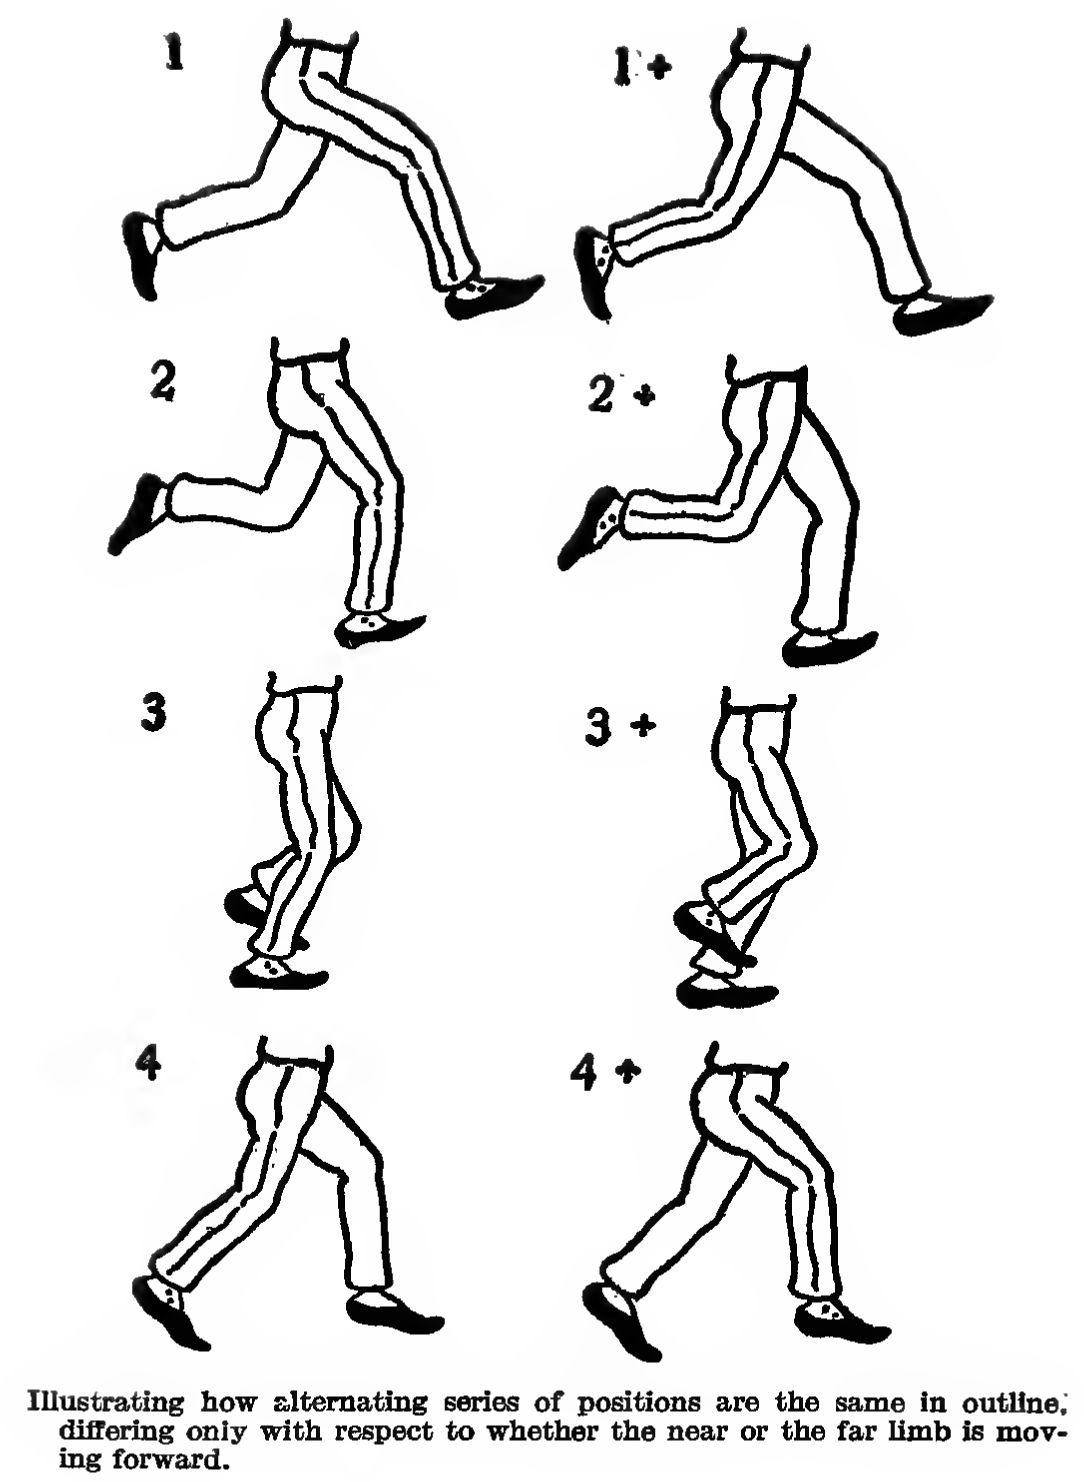 How To Draw And Animate A Person Walking Or Running Huge Guide And Tutorial How To Draw Step By Step Drawing Tutorials Running Drawing Person Drawing Drawings